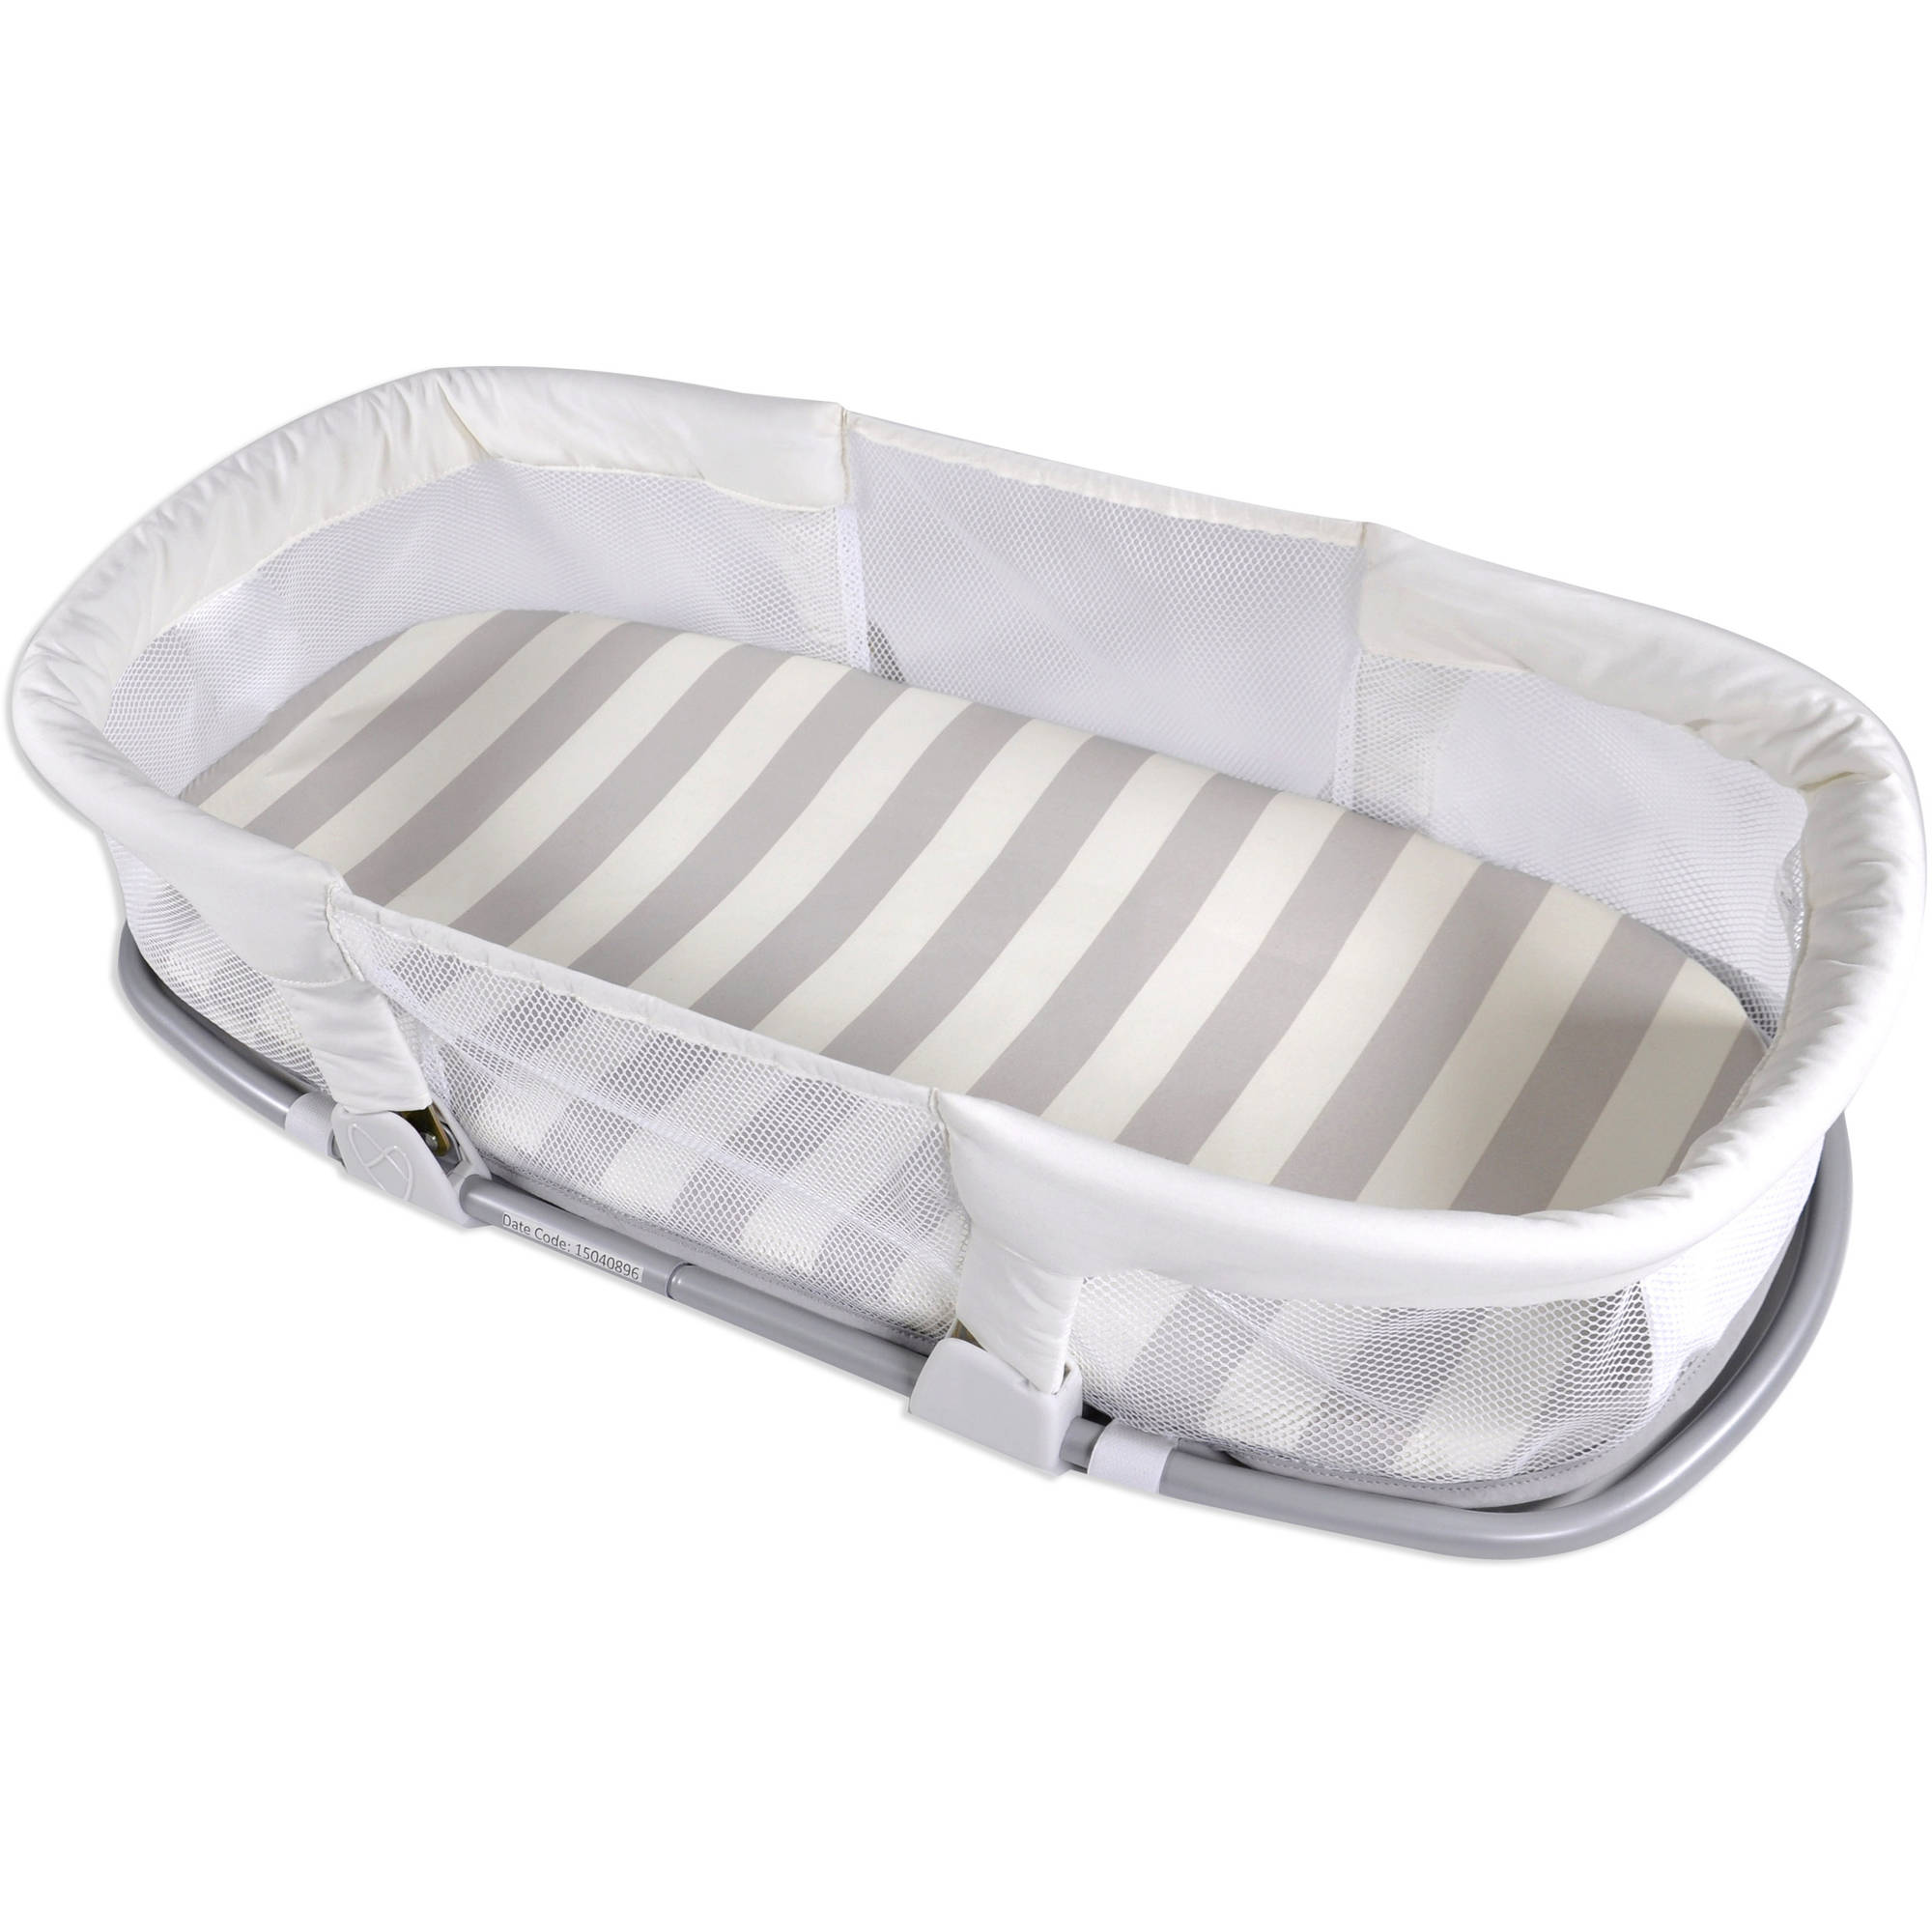 cradle baby us ebay newborn bed sleeper ru buy new en bassinet basket moonlight crib rocking